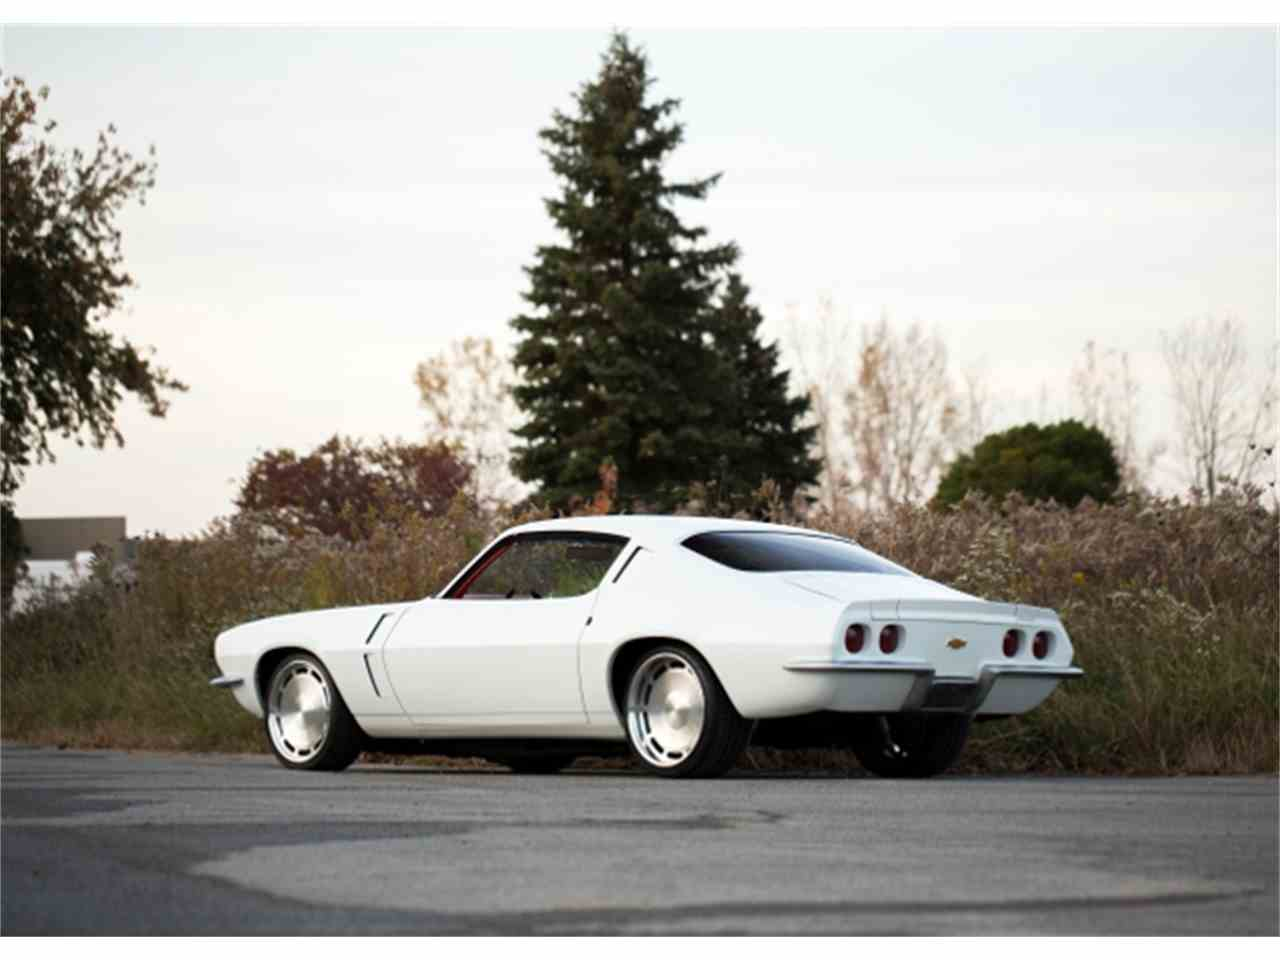 Large Picture of 1970 Chevrolet Camaro located in Ohio Offered by a Private Seller - GGNI